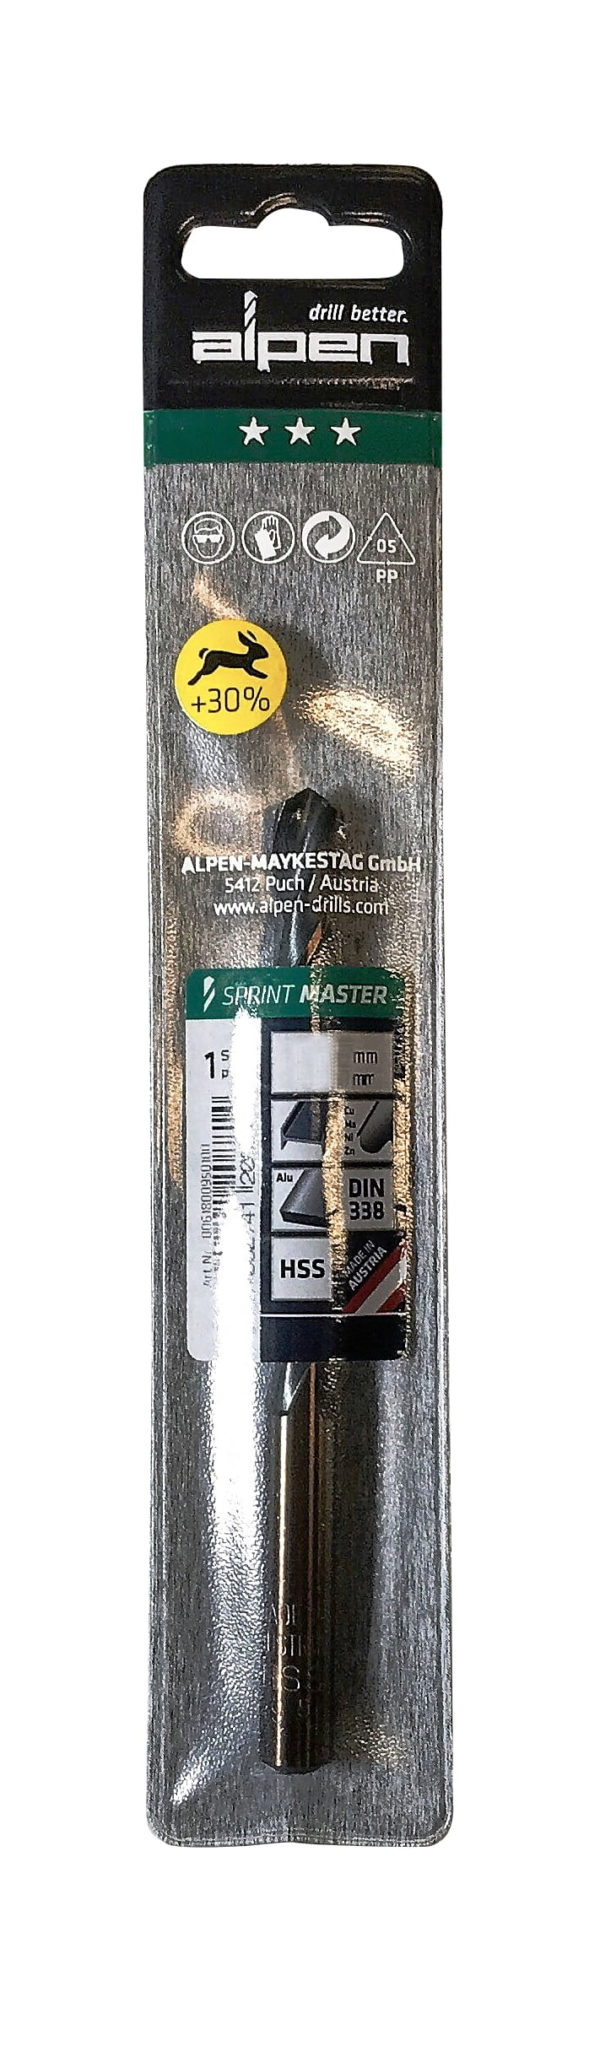 Alpen Series 631 Sprint Master Ø 6.0 (Pkt of 10) With Hang Tag